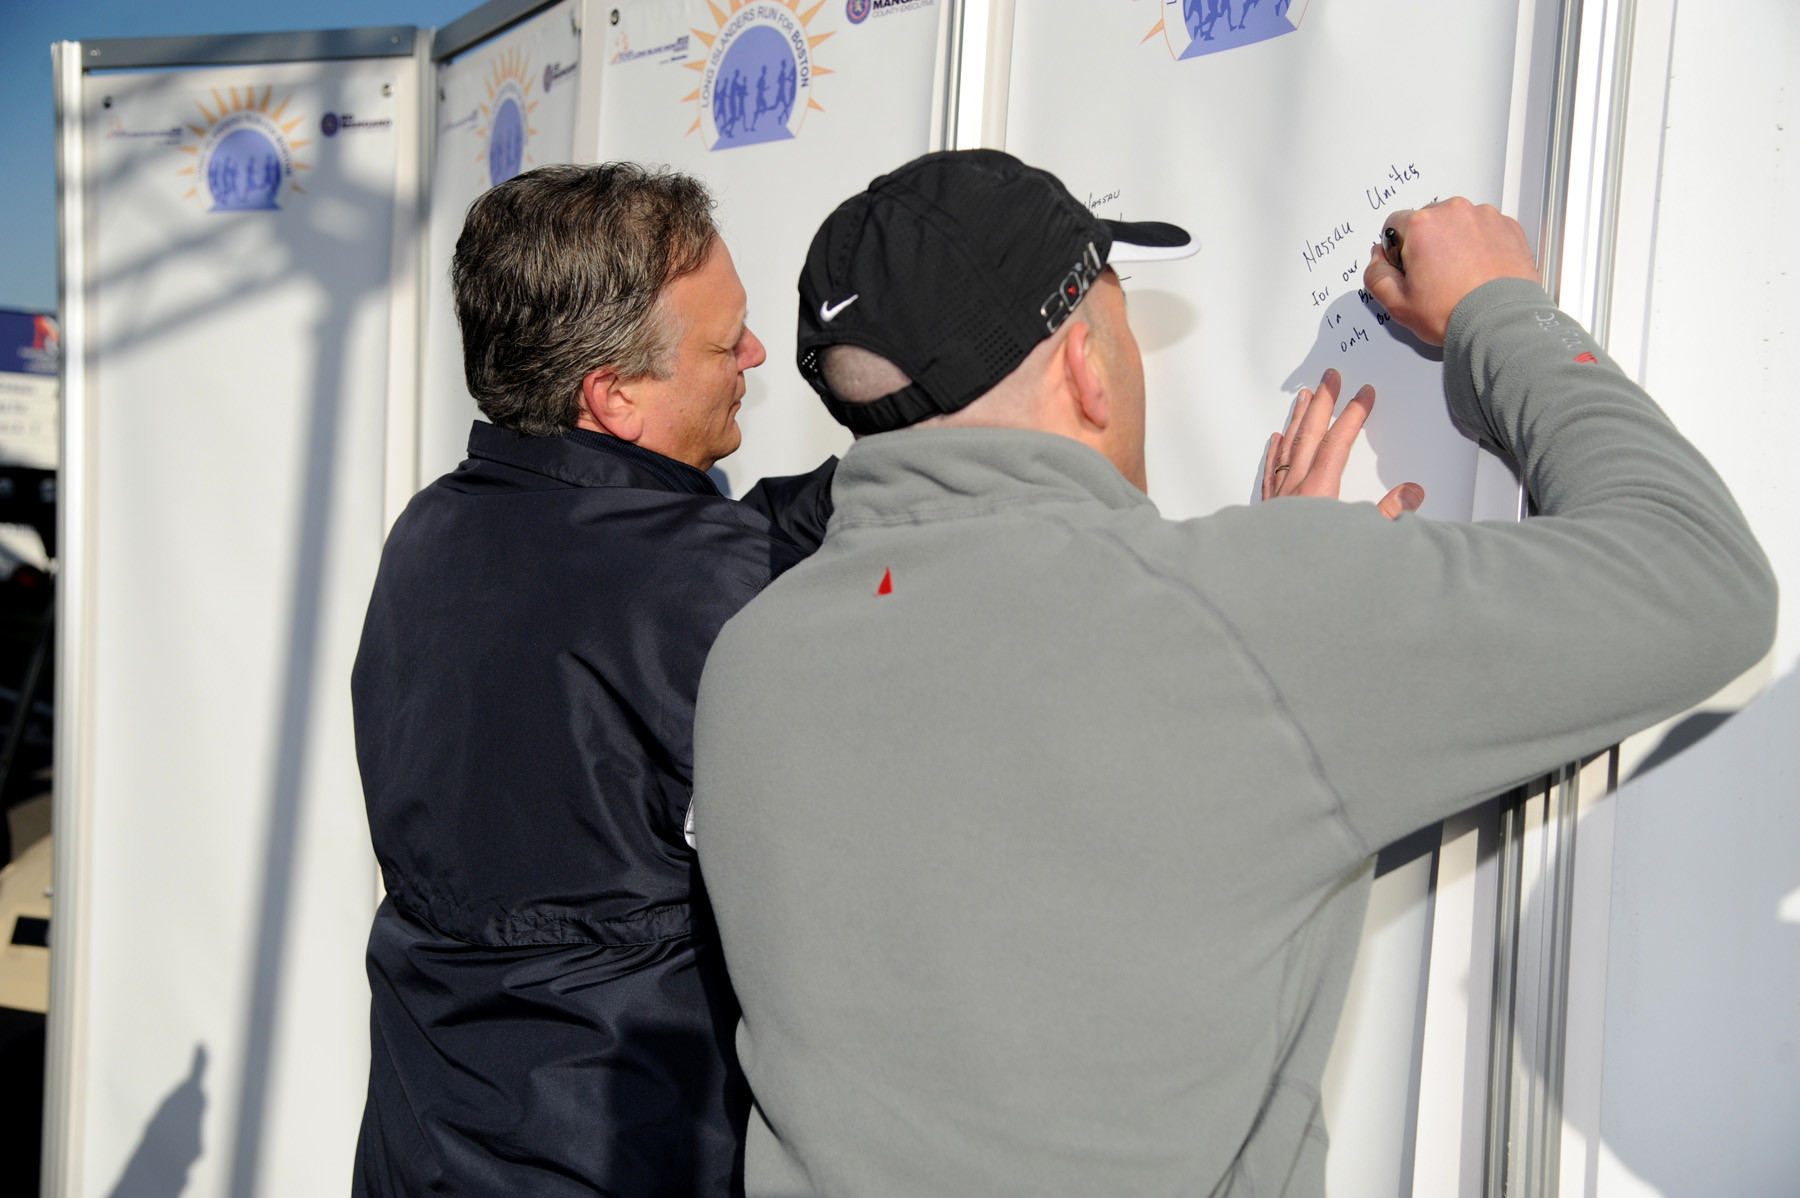 Mangano and RXR Realty CEO Scott Rechler, the title sponsor of the marathon, signed a 70-square-foot banner, which will be shipped to Boston.